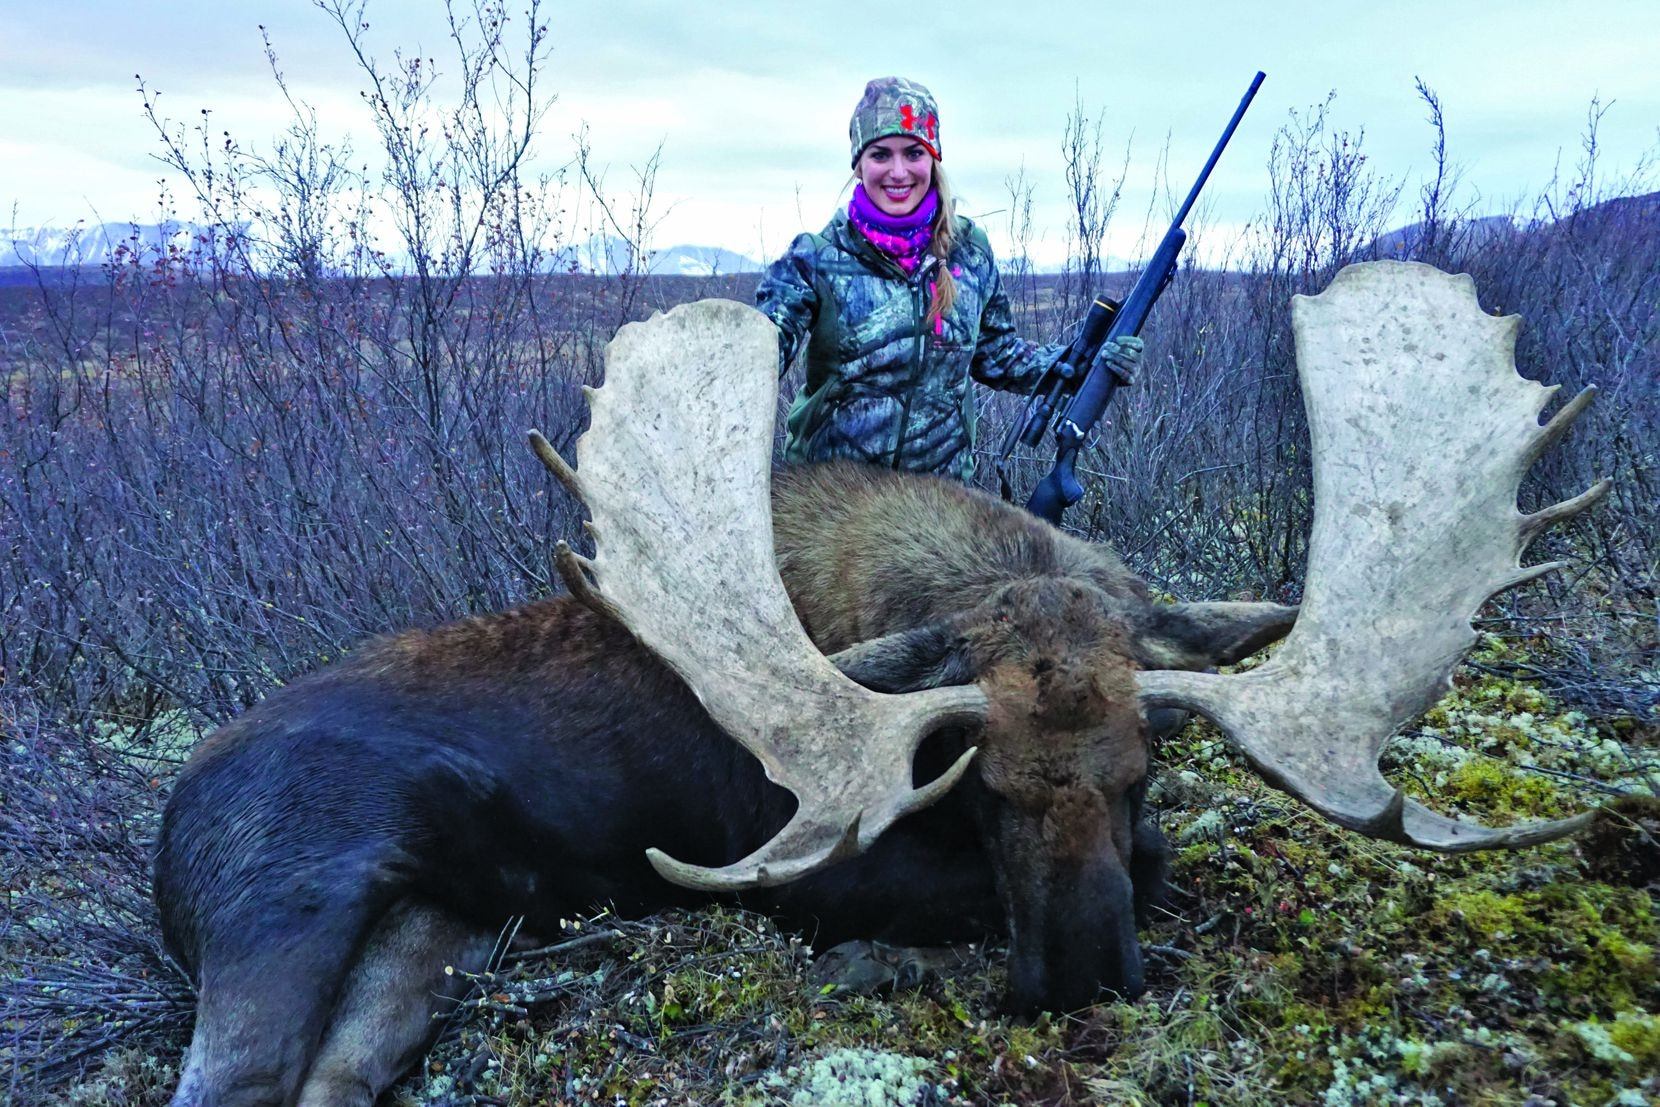 Eva Shockey's wedding guests dined on this 1,500-pound moose she killed.